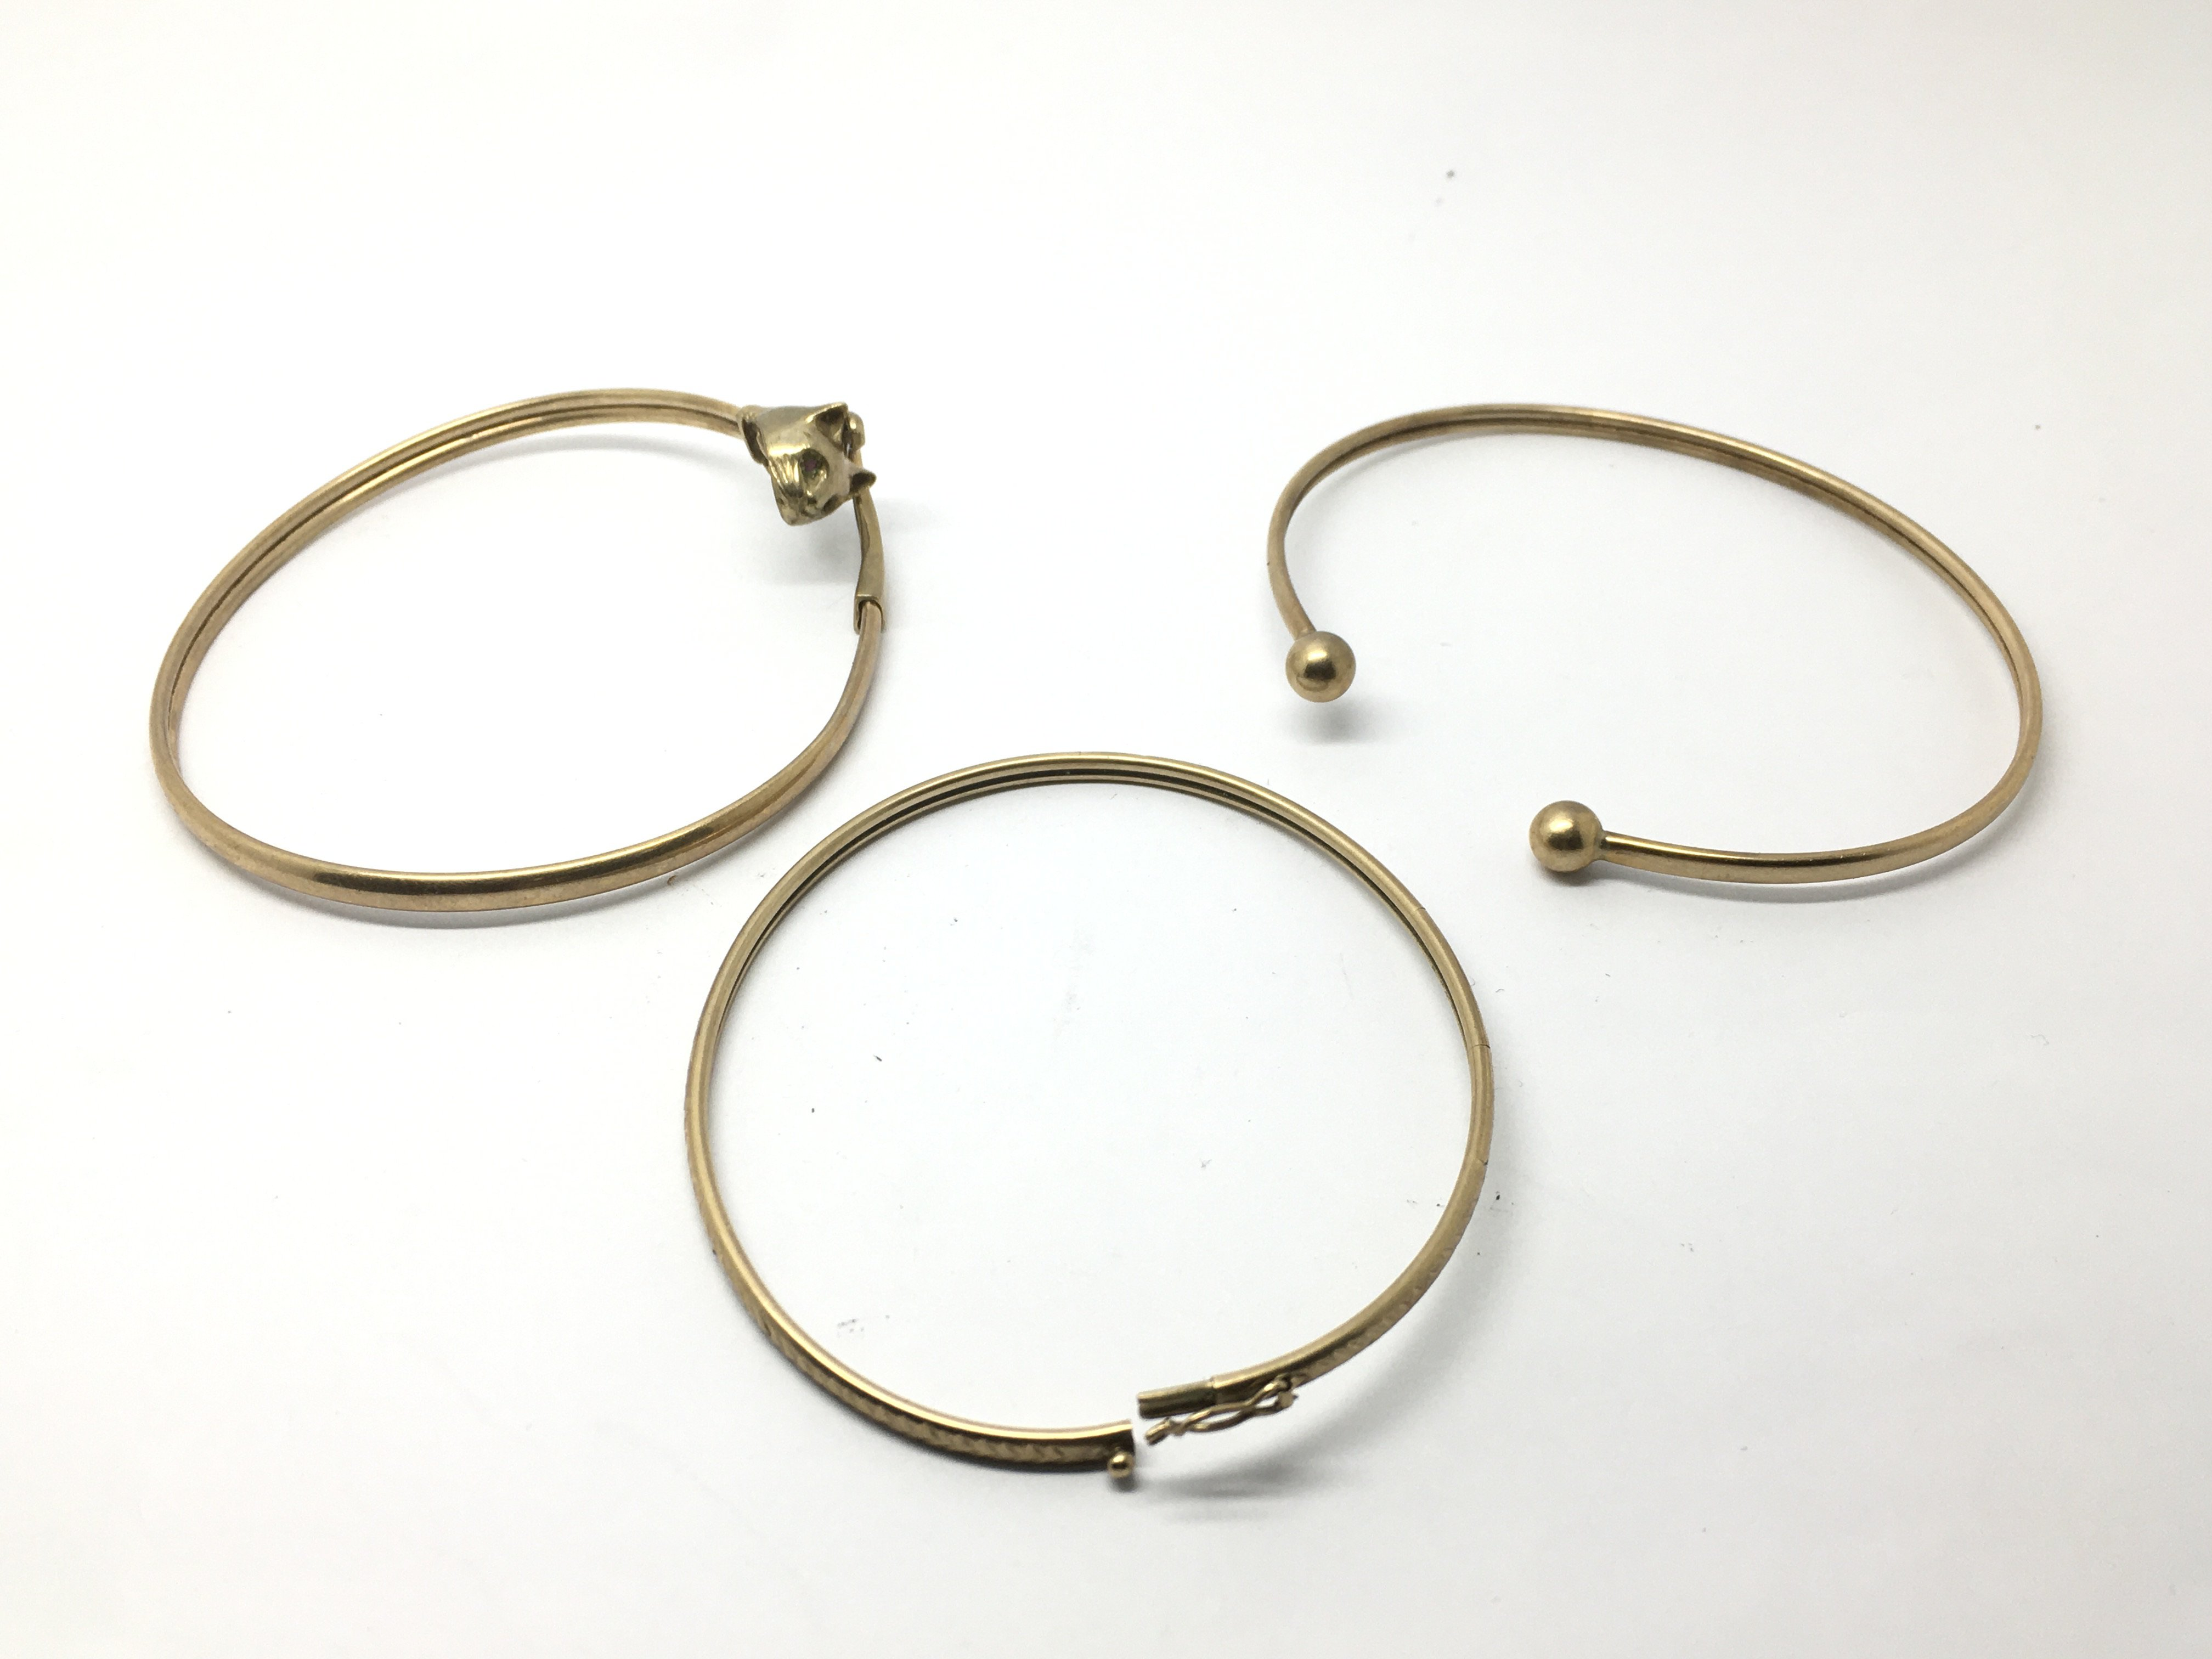 Three 9ct gold bangles, one in the form of a cat's